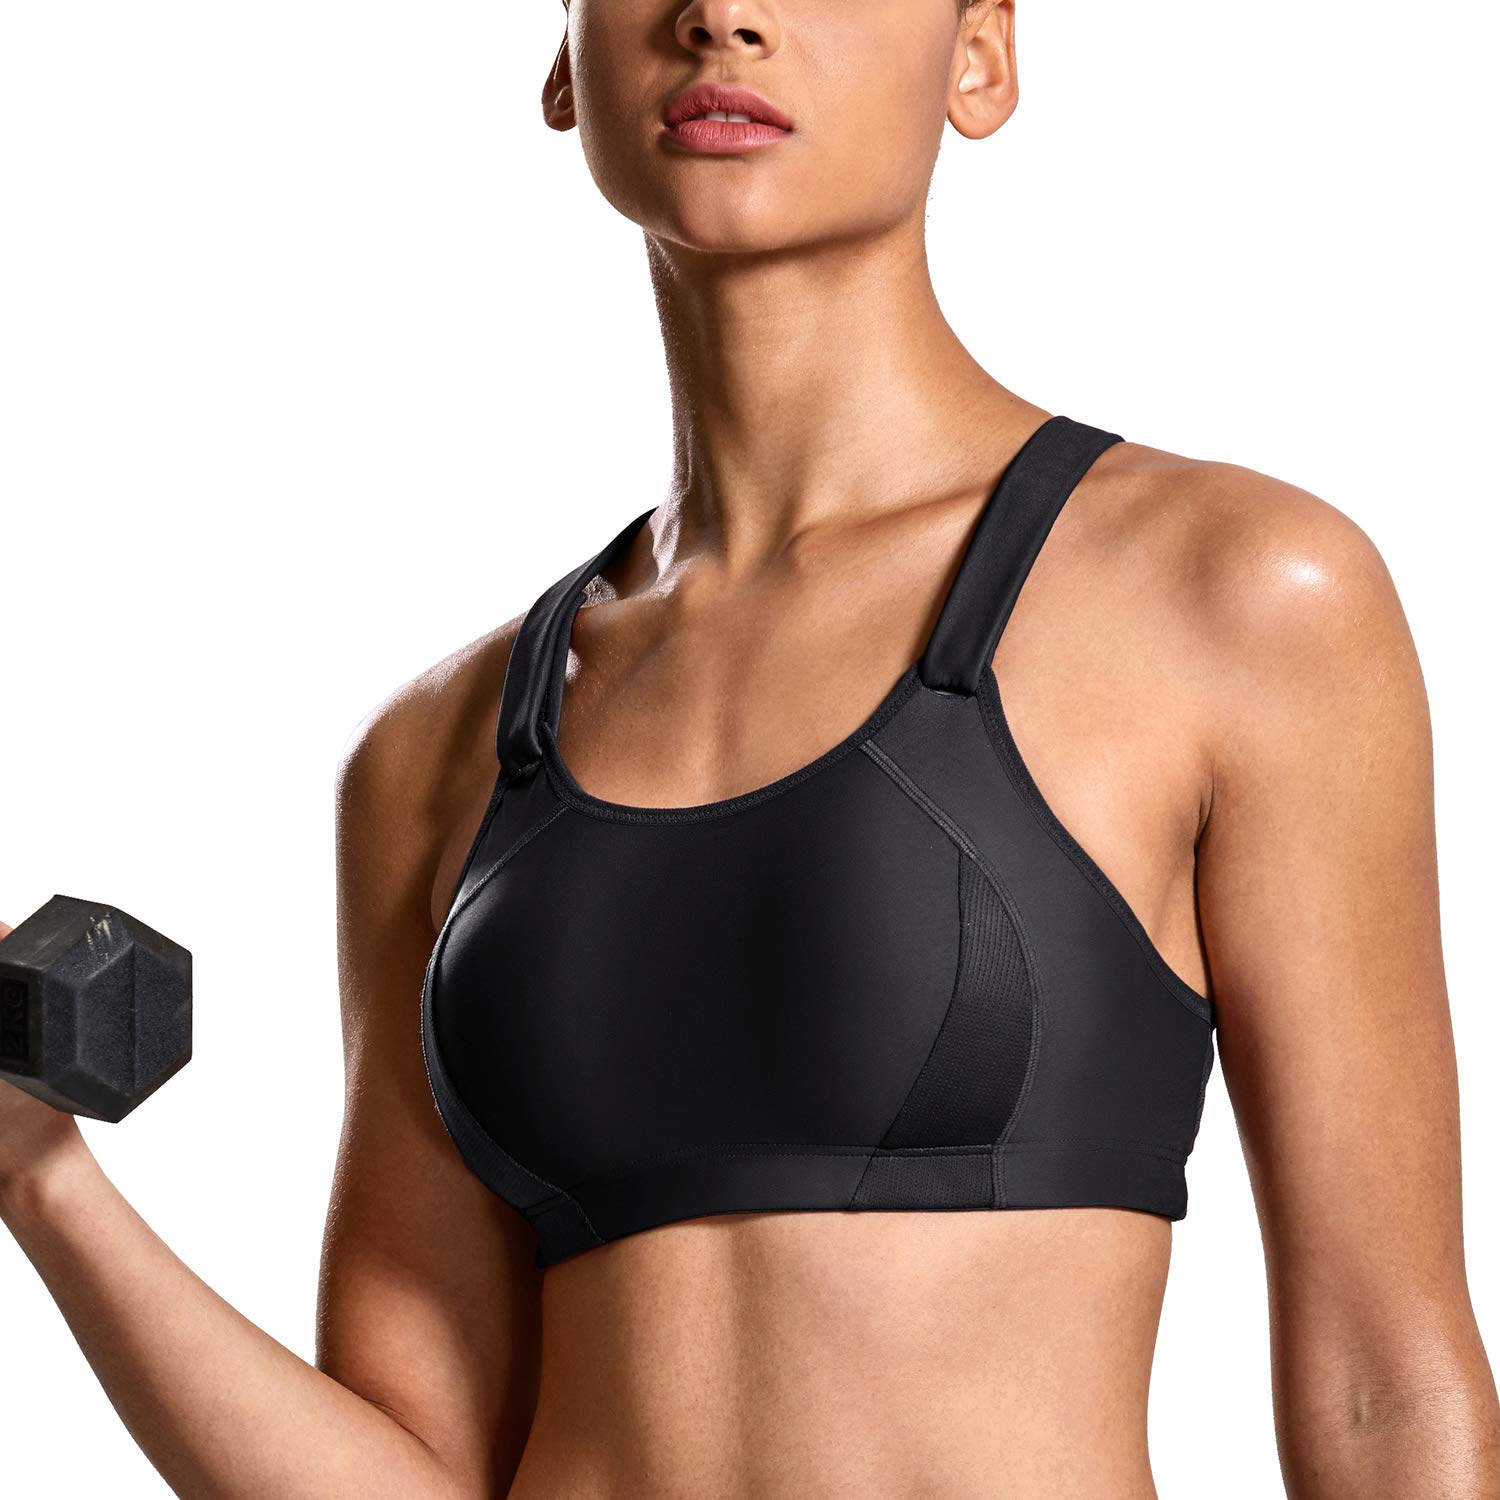 d0b4d5df40 SYROKAN Women s Front Adjustable Lightly Padded Racerback High Impact  Sports Bra at Amazon Women s Clothing store